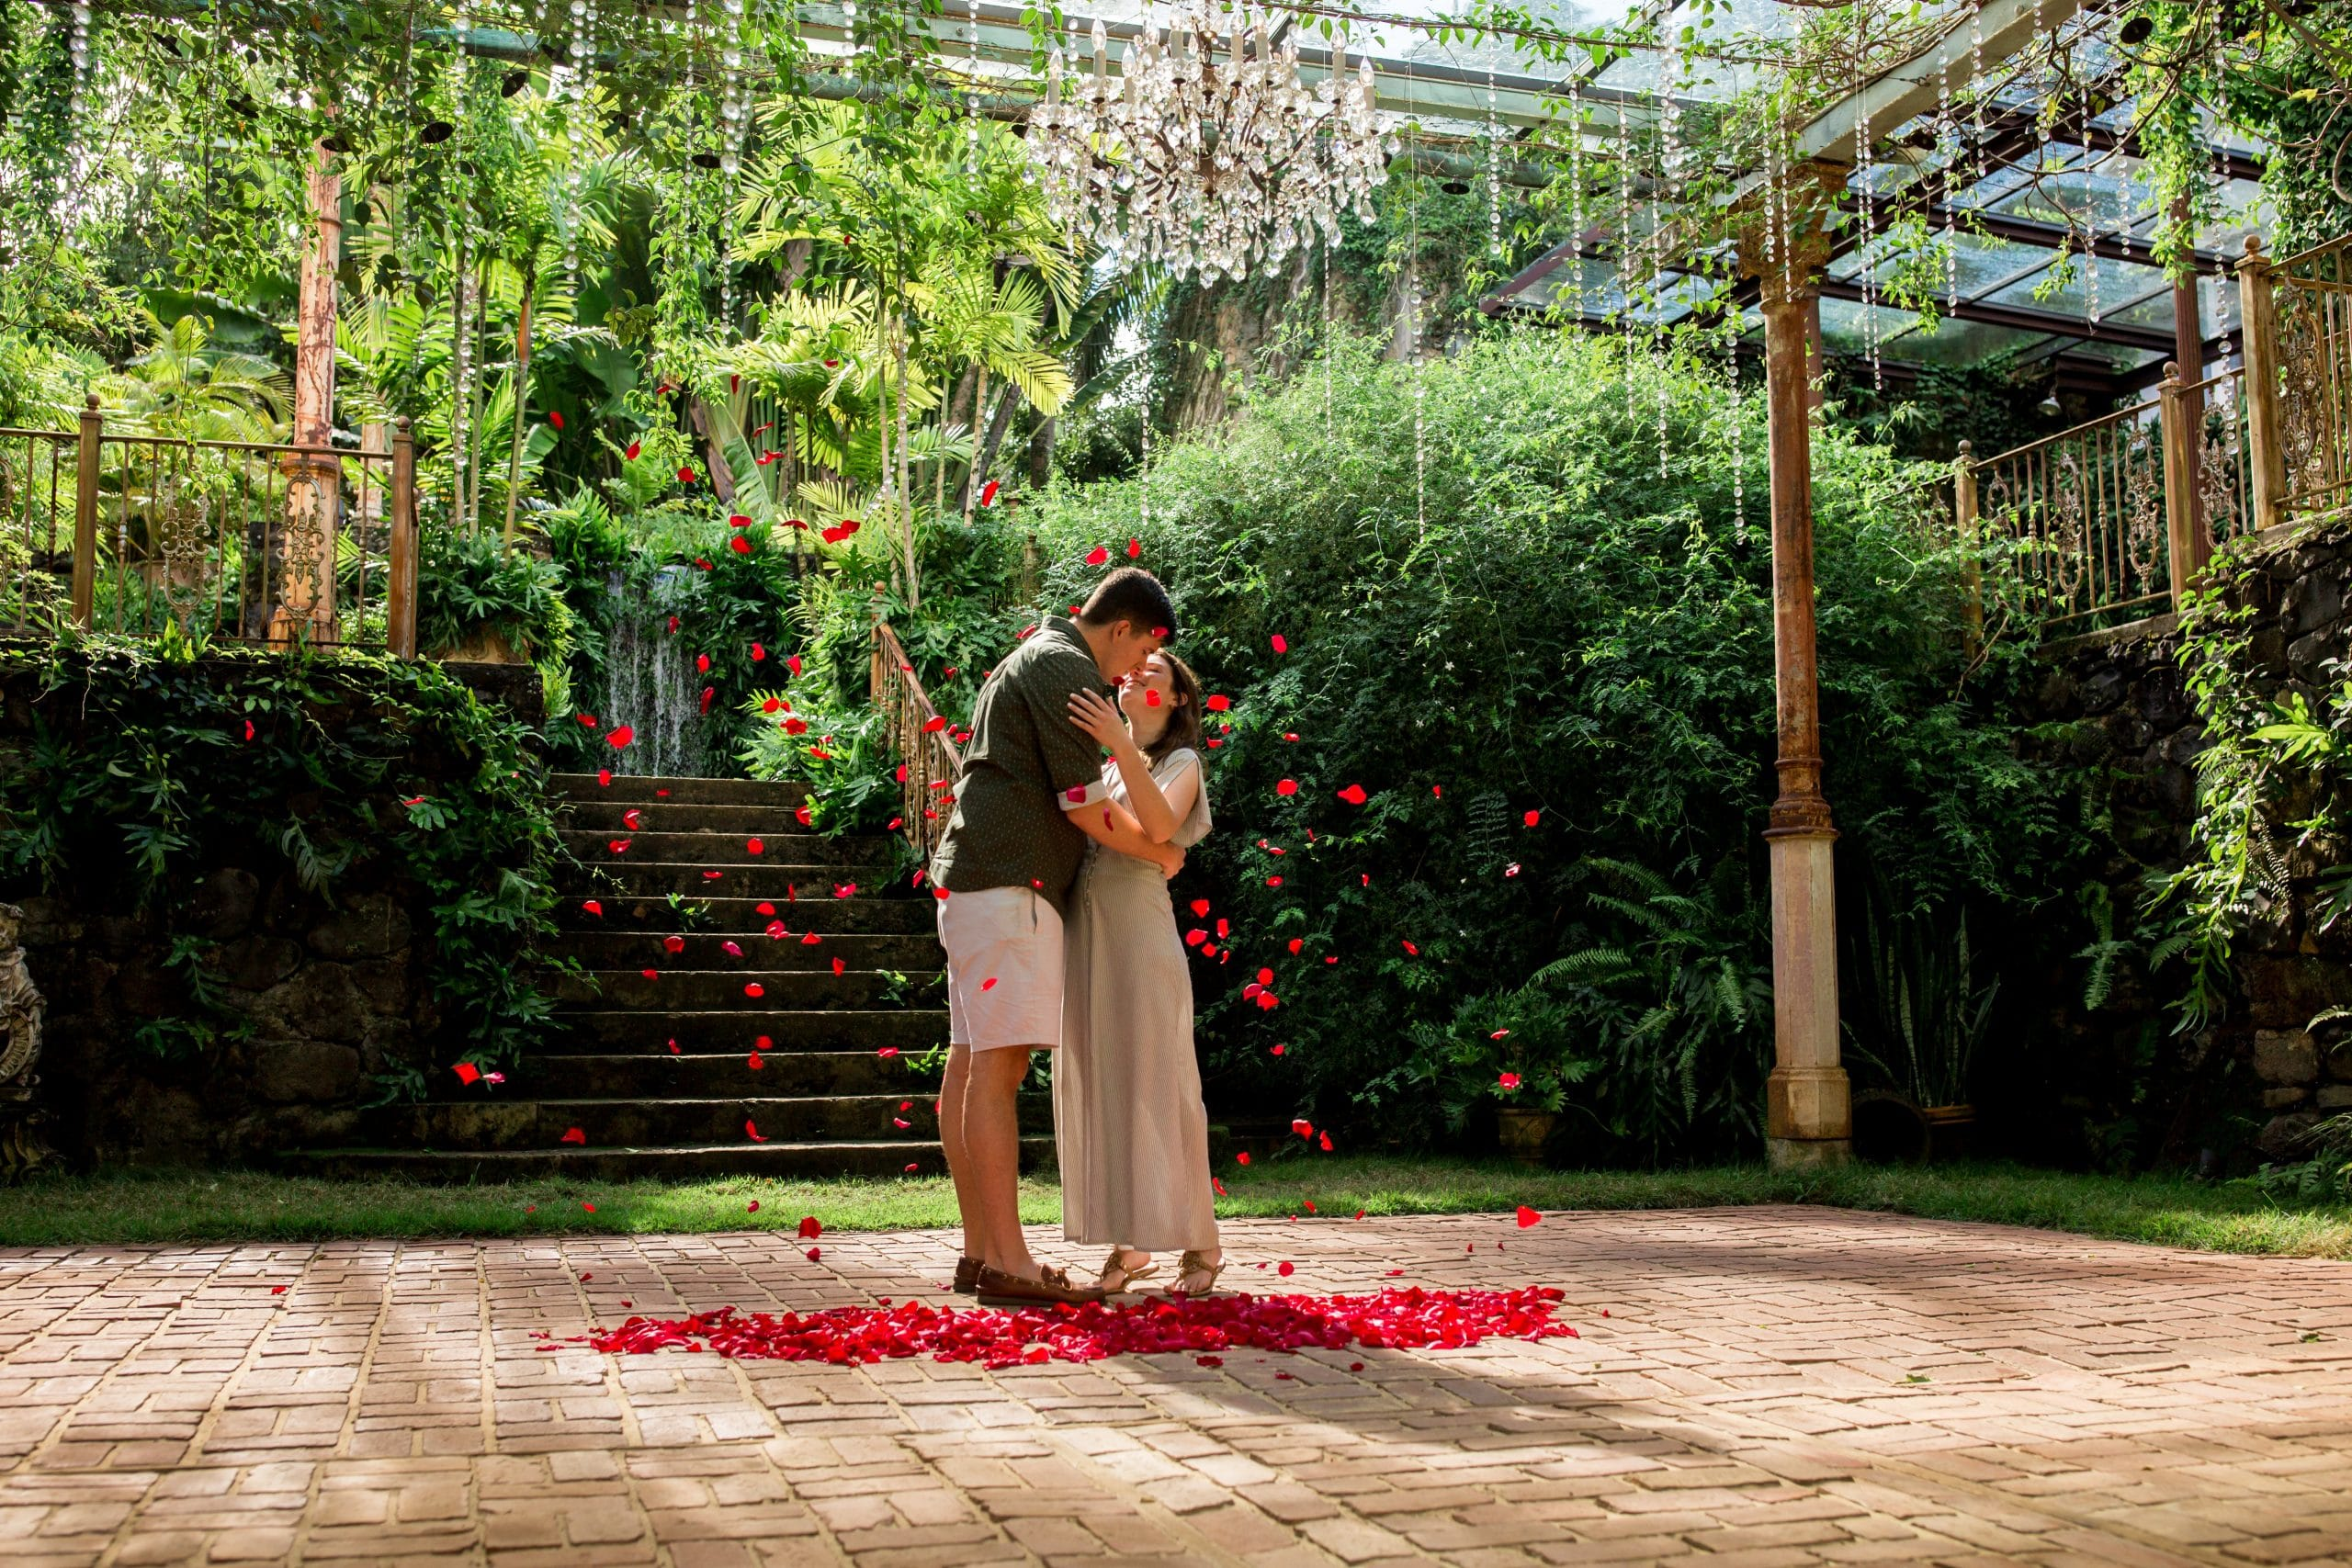 Profeesional_Proposal_Photographer_Social